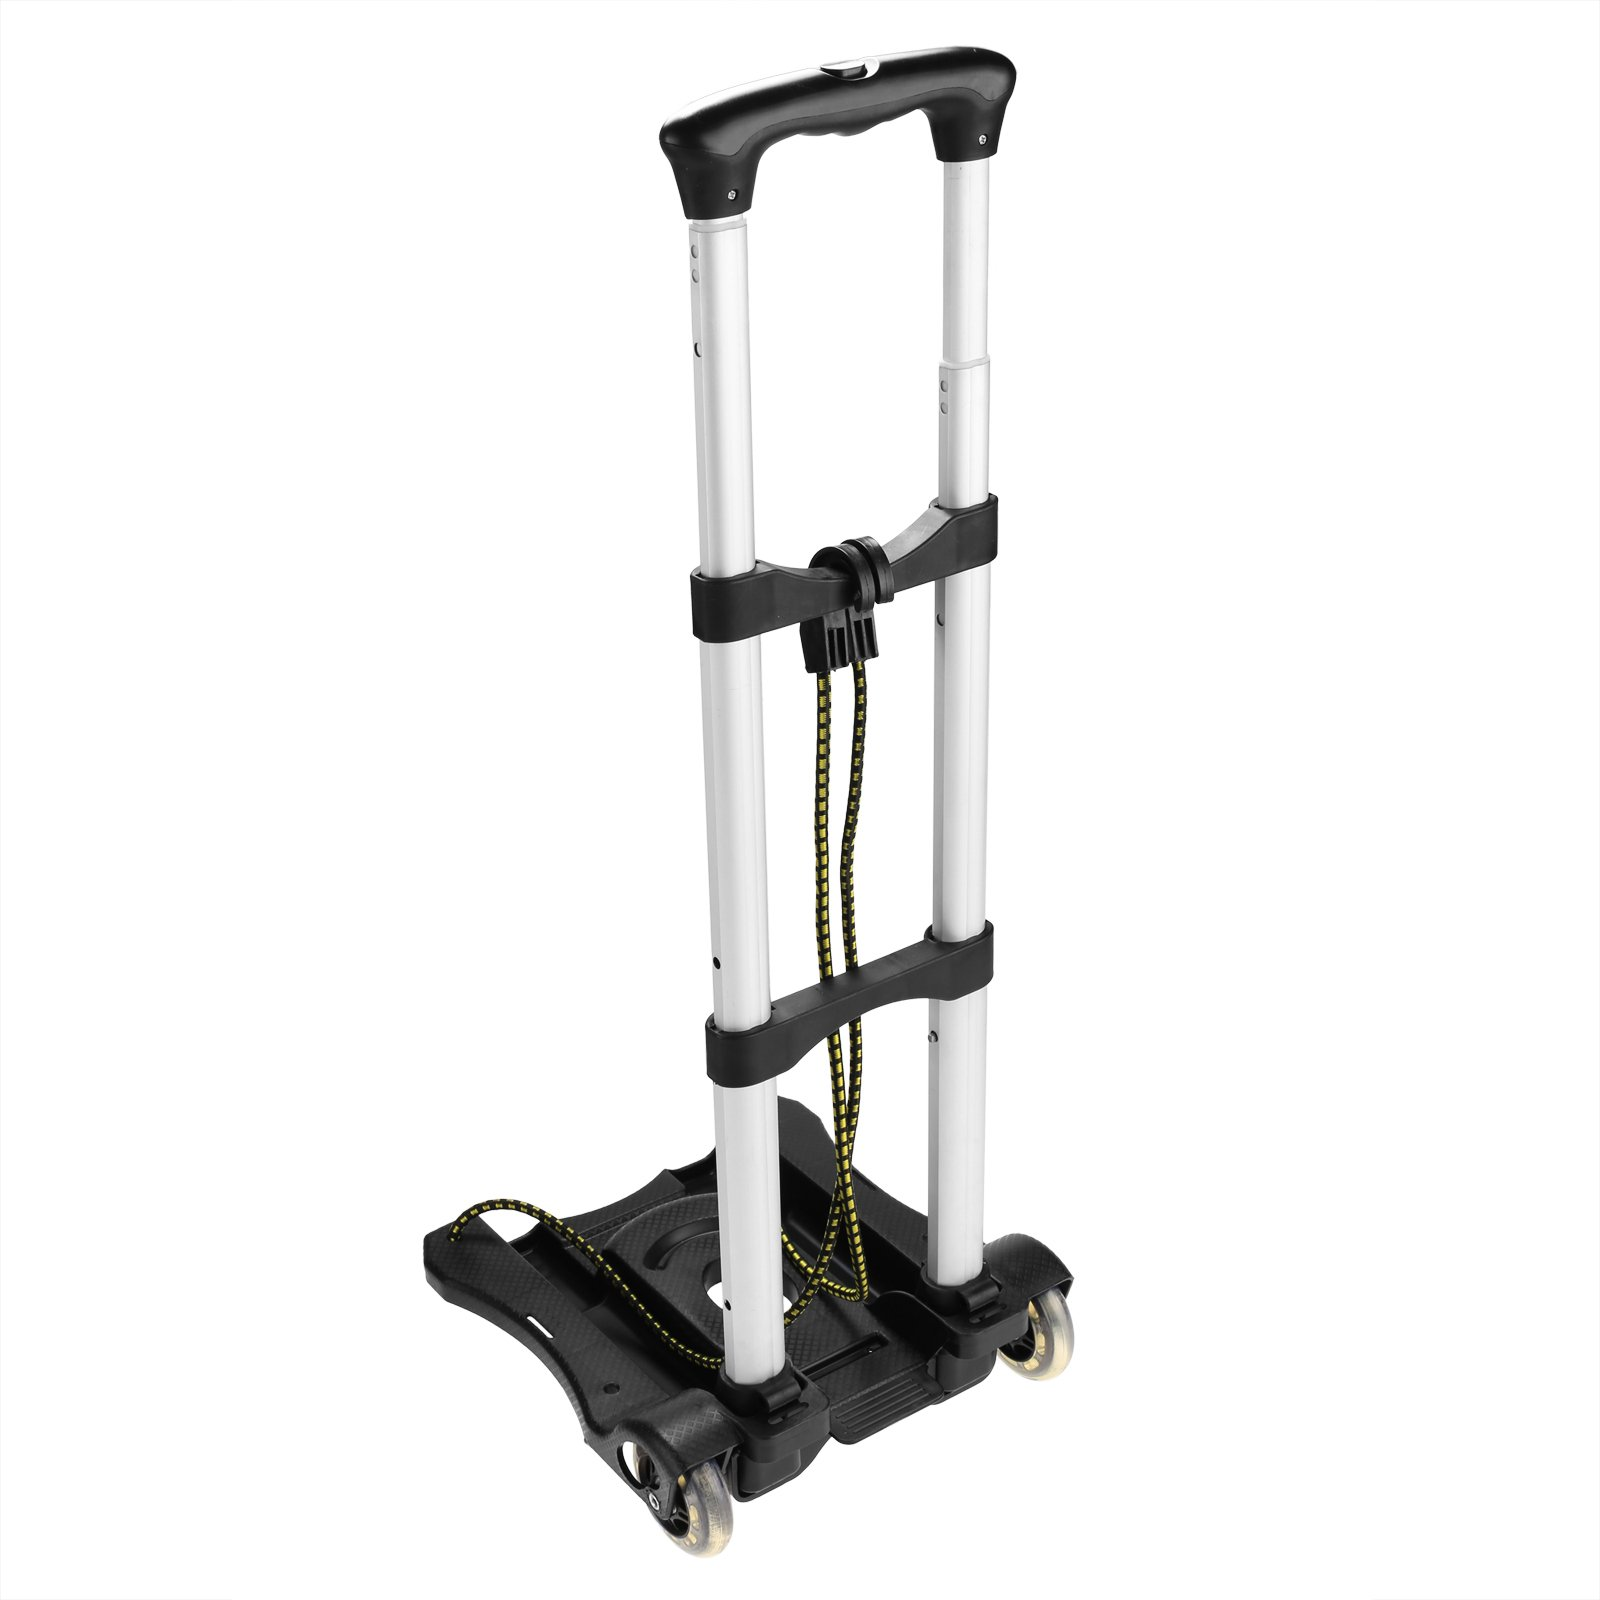 Anfan Folding Luggage Cart Portable Personal Moving Hand Truck 2 Wheels Foldable Platform Truck Shopping Cart - Support 80lbs Capacity by Anfan (Image #2)